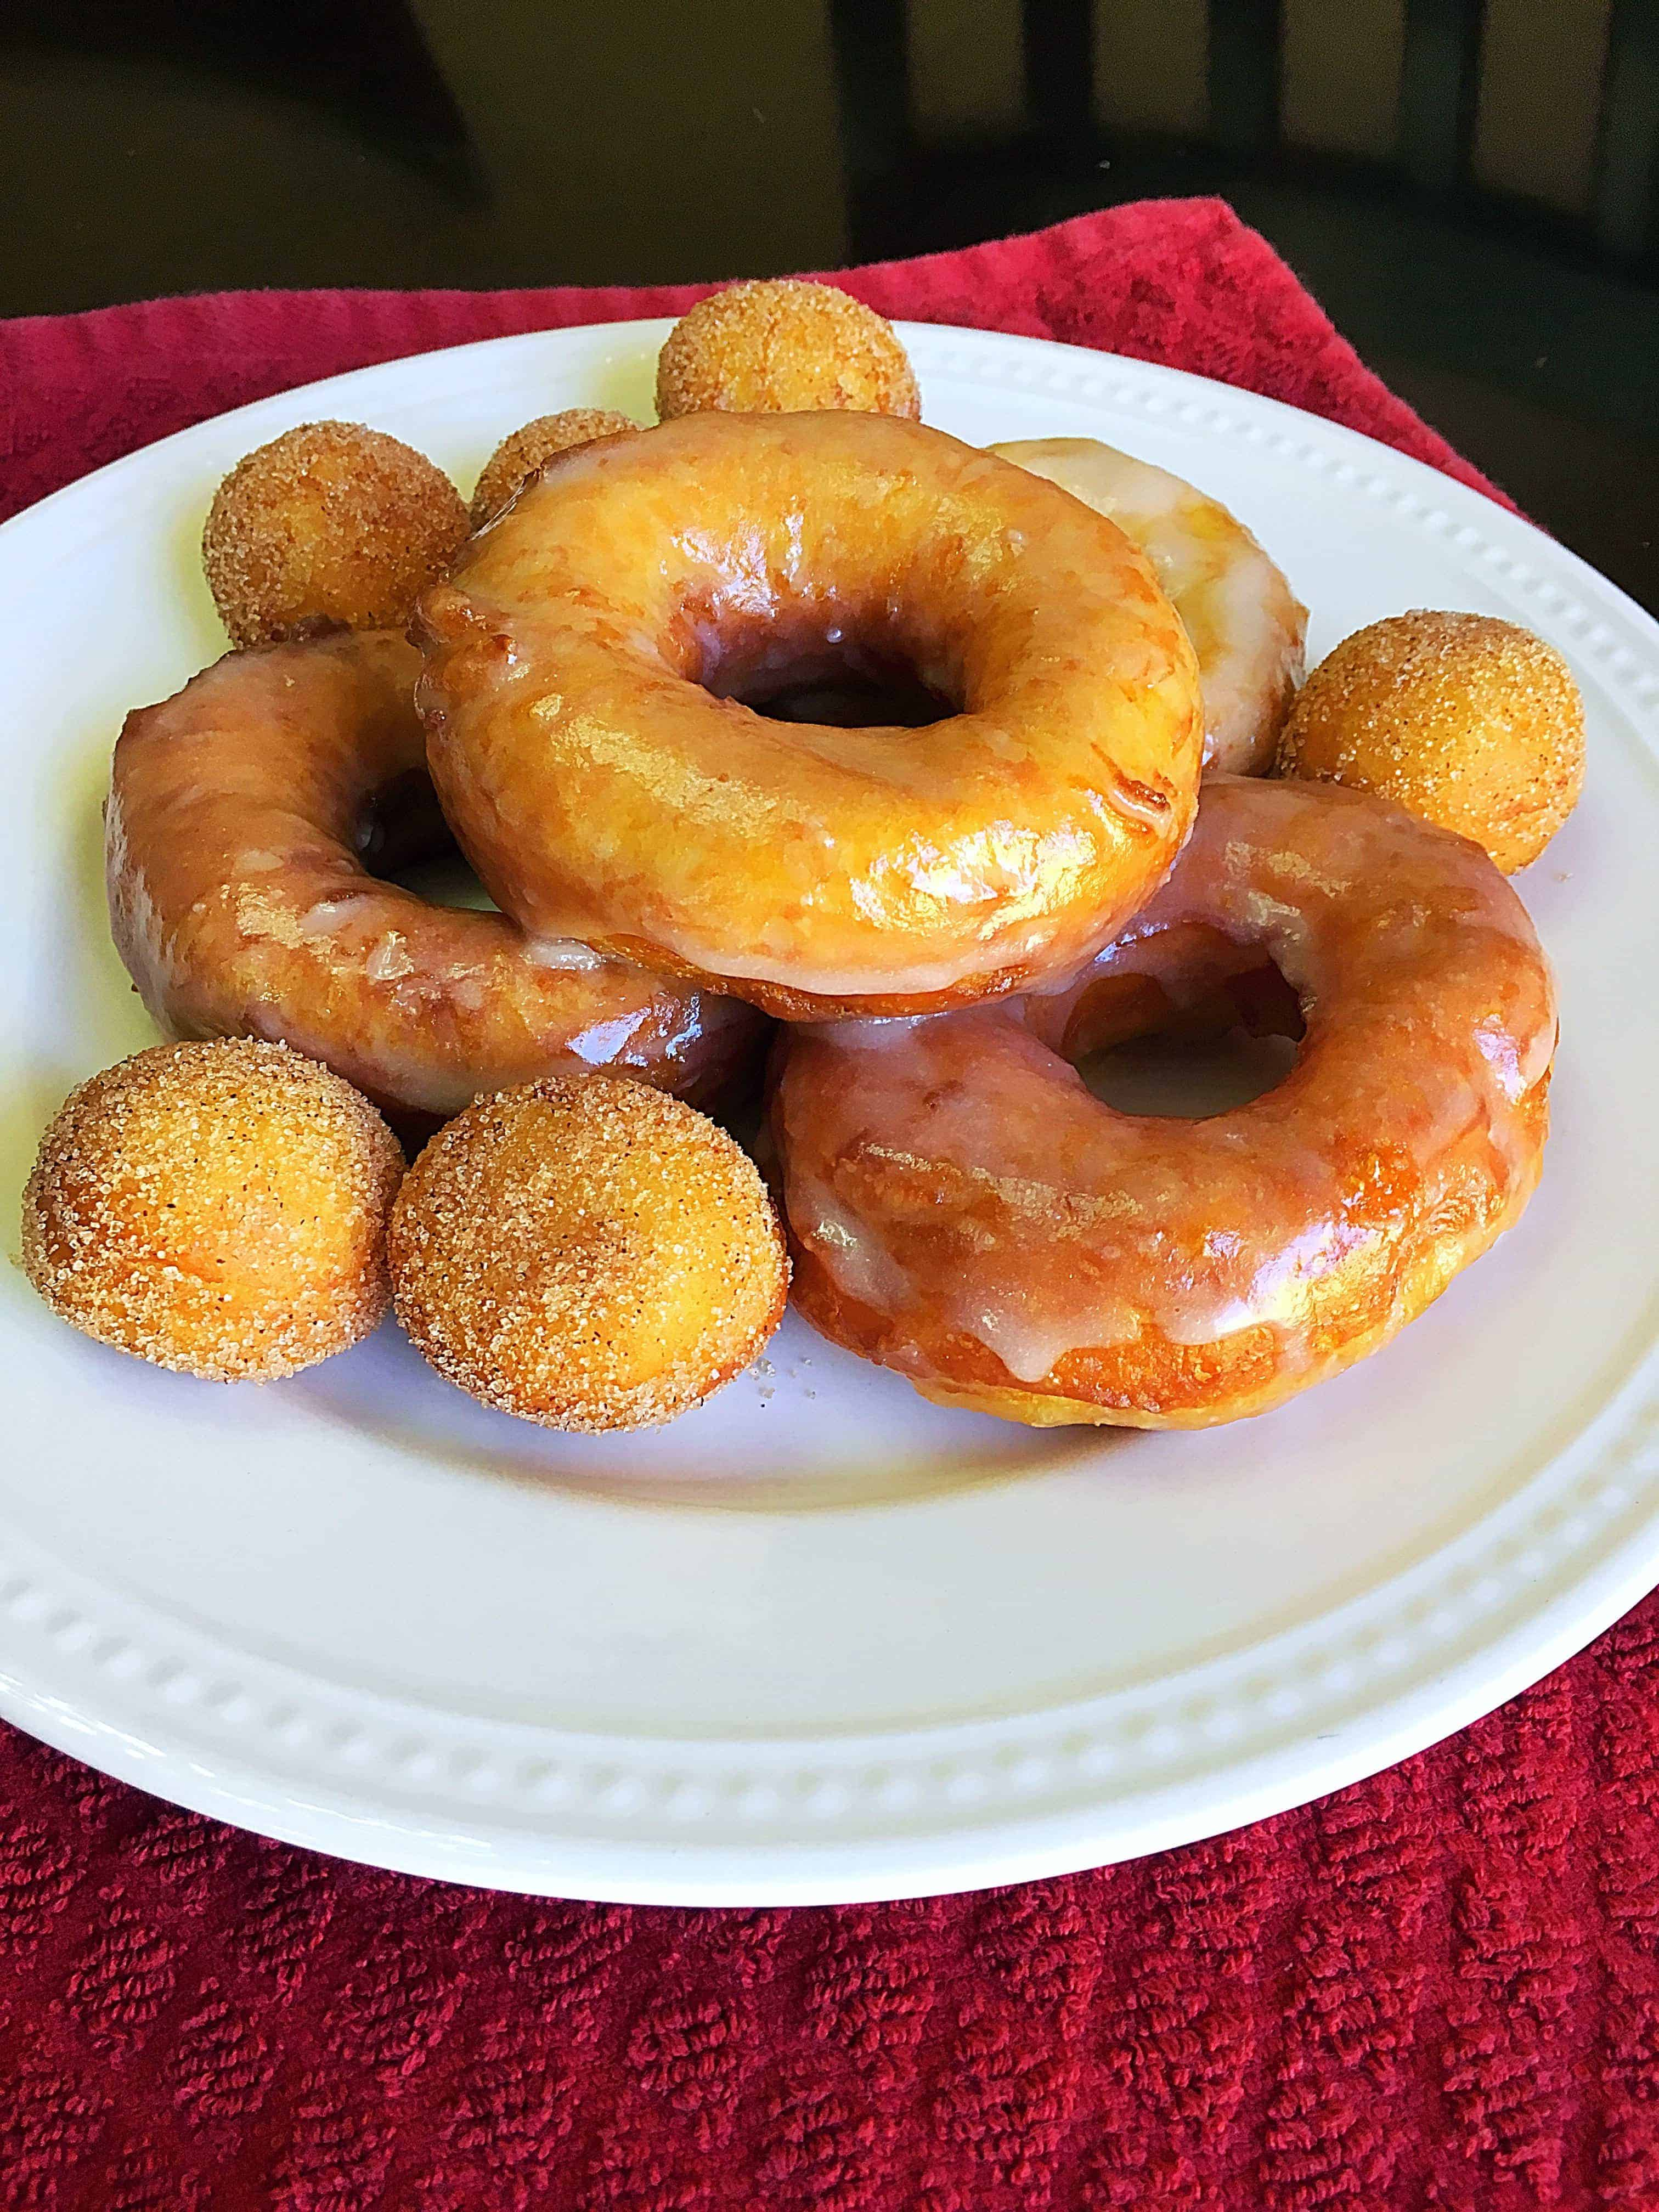 Mouthwatering Biscuit Doughnuts- These easy-to-make glazed doughnuts are made from canned biscuits and are absolutely mouthwatering! Trust me, you won't be able to eat just one of these yummy biscuit doughnuts and they only take just a few minutes to make!